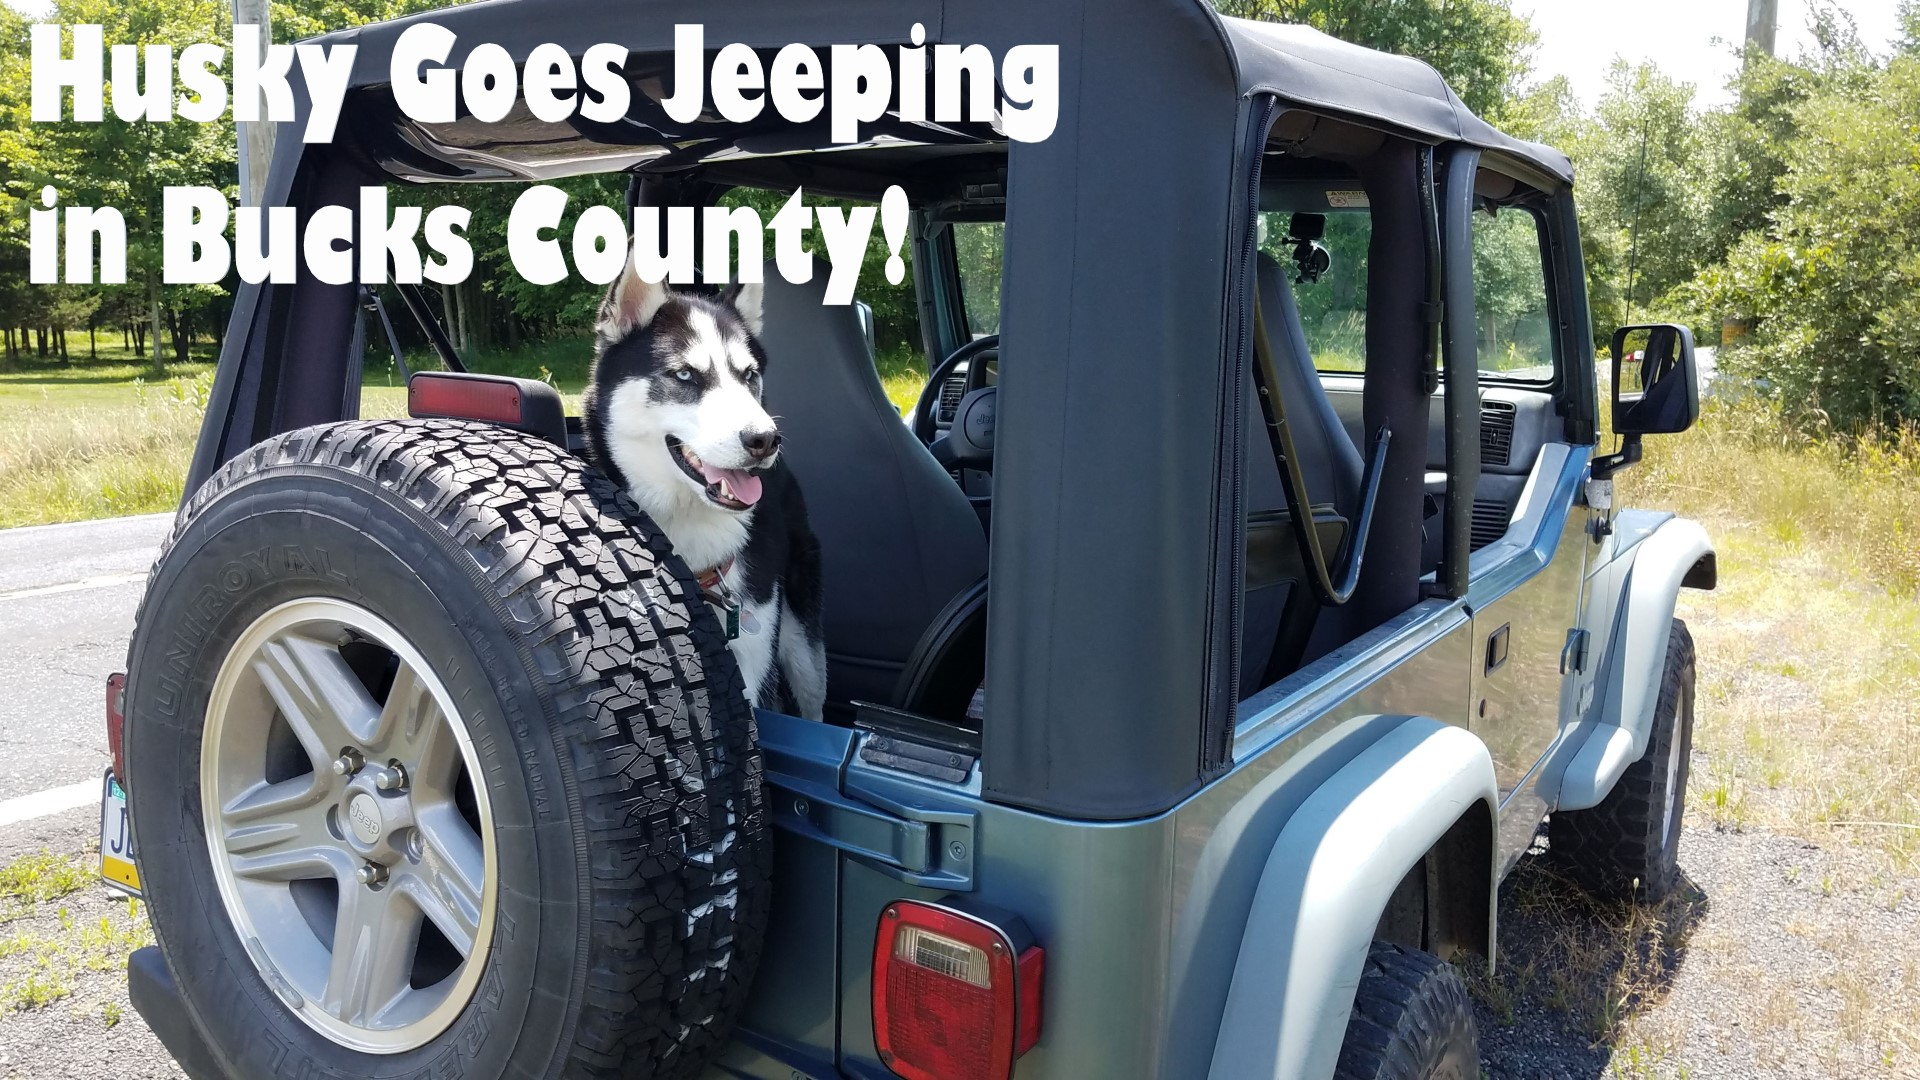 Bucks County Jeeping